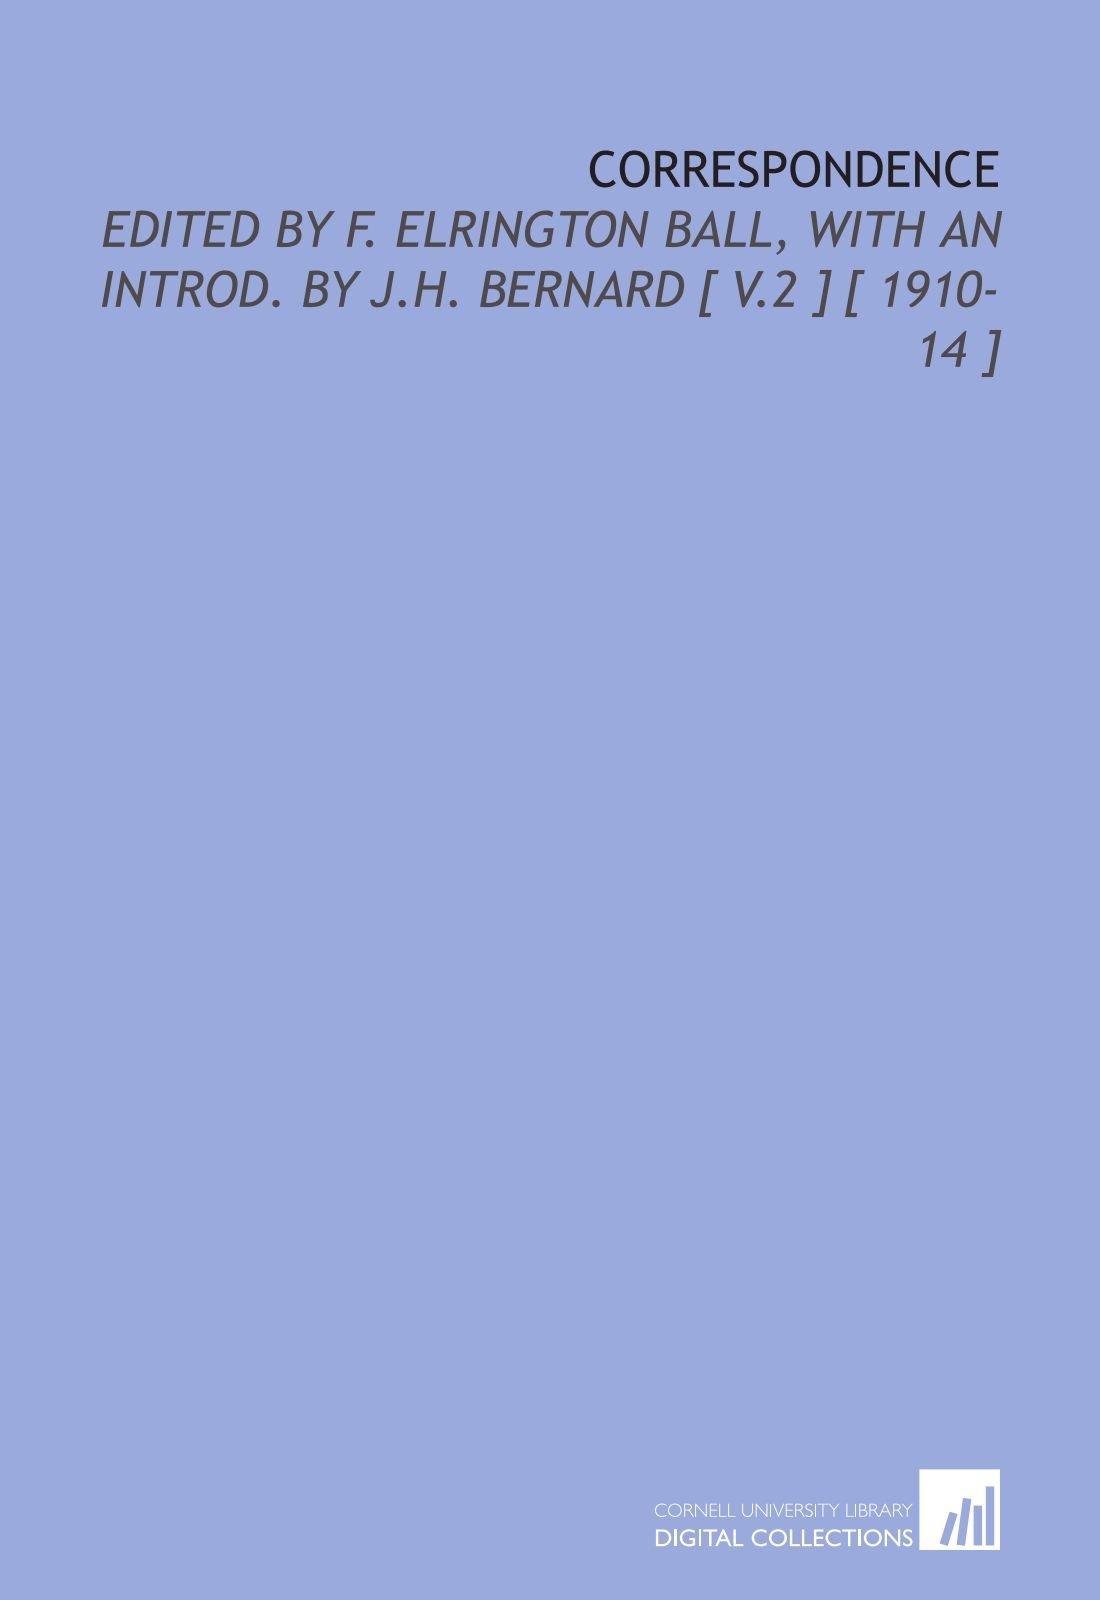 Download Correspondence: Edited by F. Elrington Ball, With an Introd. By J.H. Bernard [ V.2 ] [ 1910-14 ] ebook